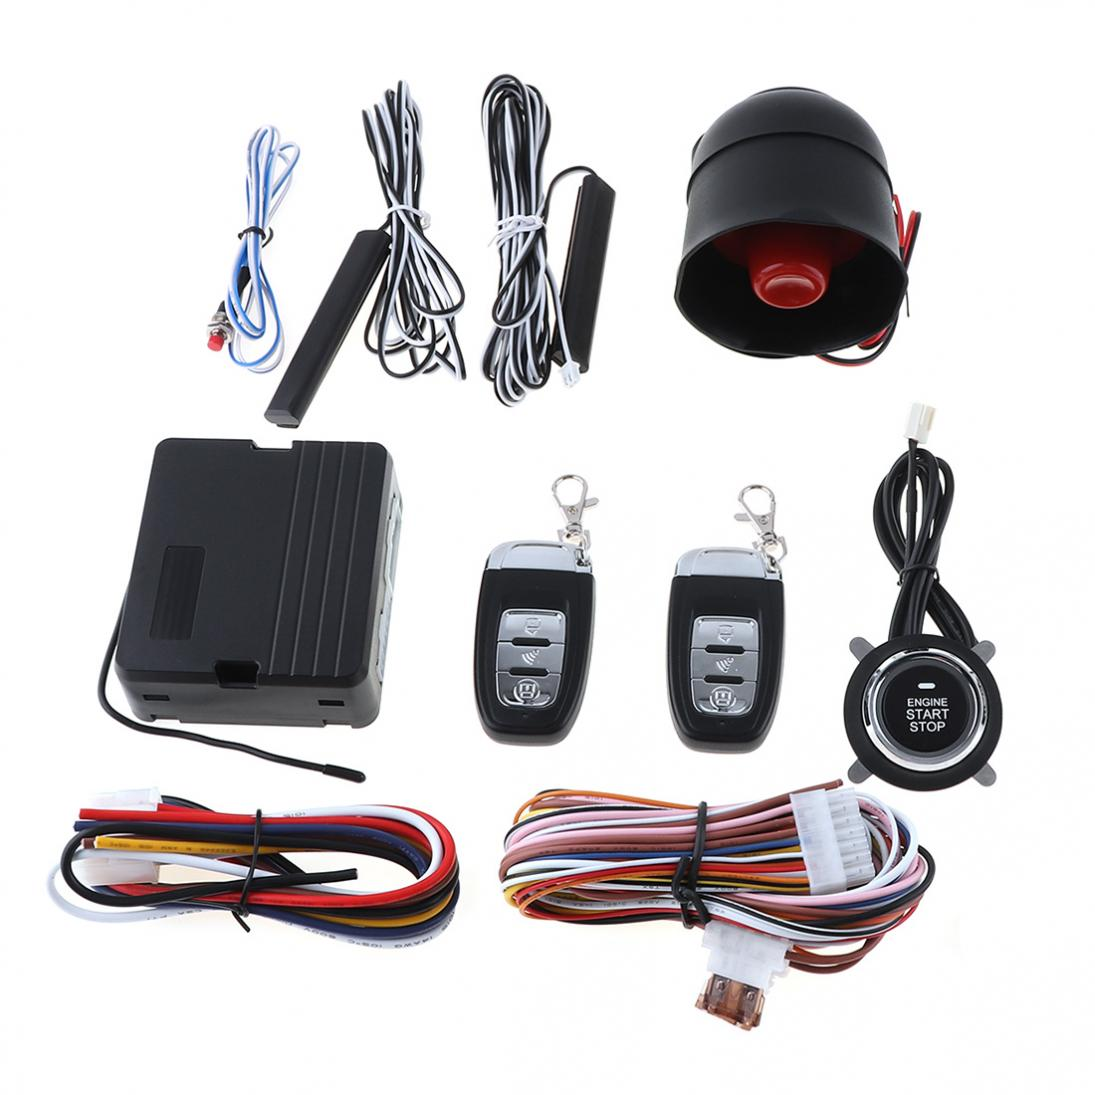 PKE Auto Car Alarm Start Stop Engine System RFID Central Lock Keyless Entry system Starter Anti-theft Engine Start Stop button smart car security alarm system ignition start stop button auto keyless entry car door central lock remote engine start stop